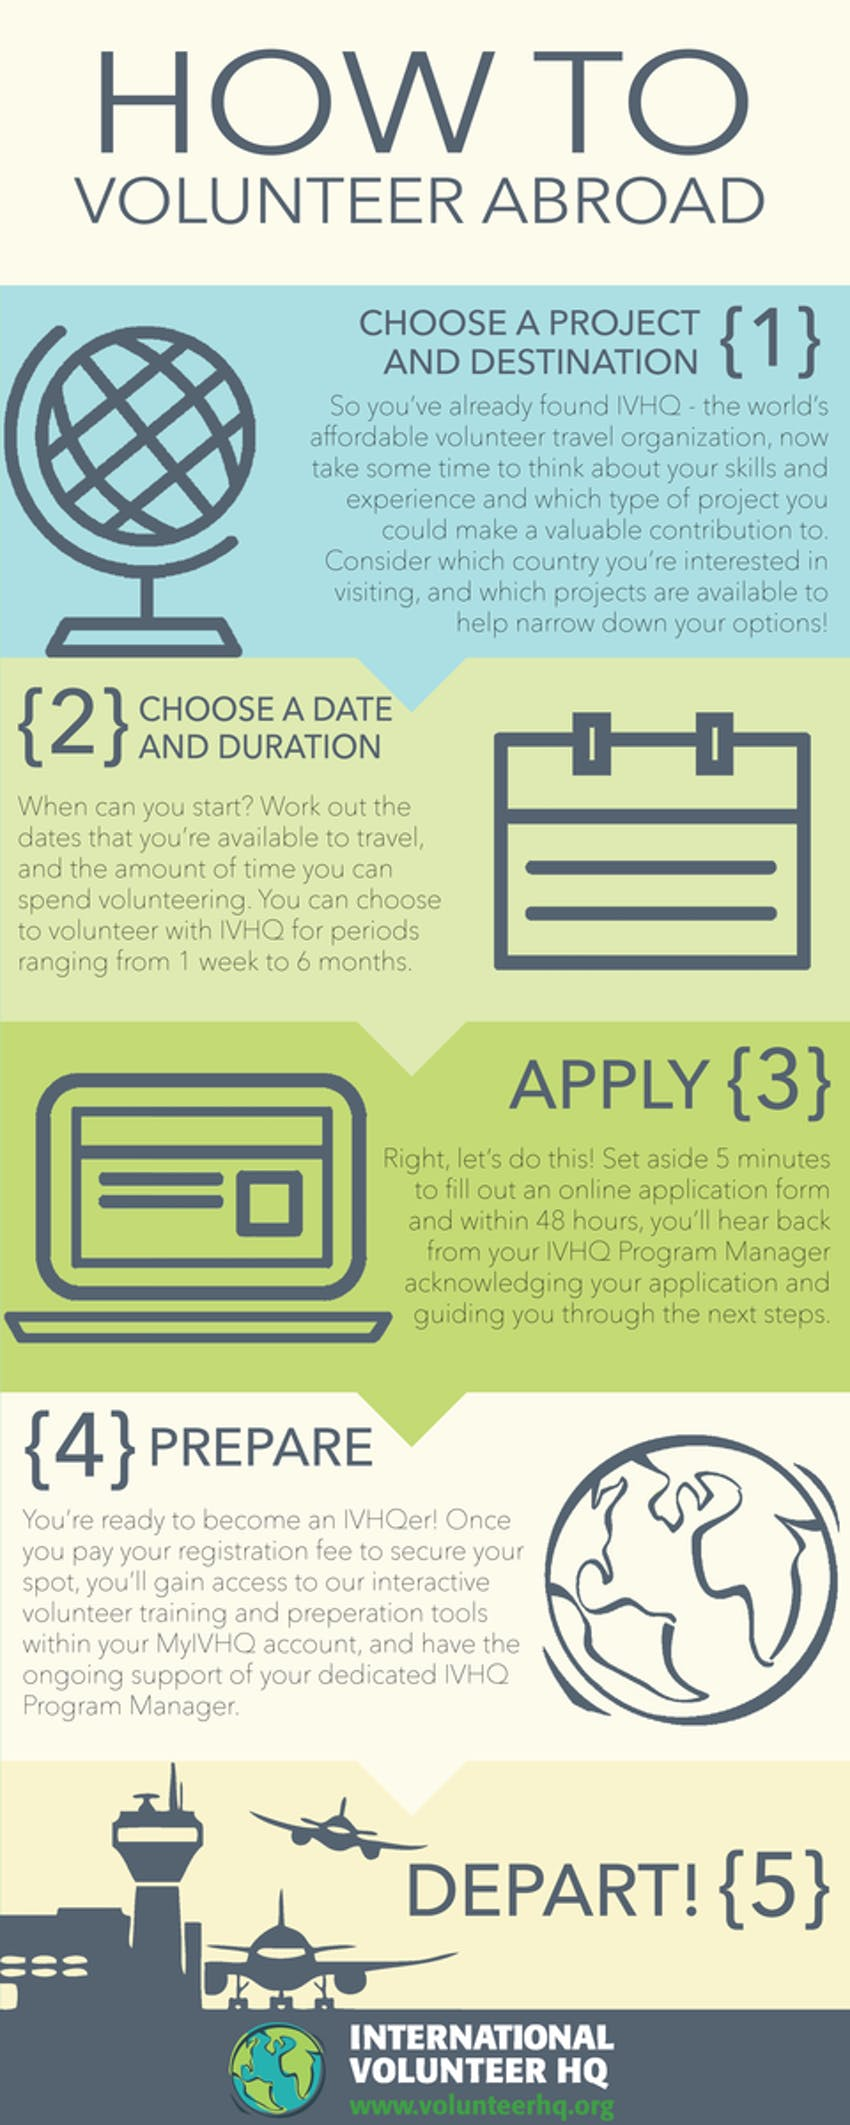 How To Volunteer Abroad with IVHQ Infographic